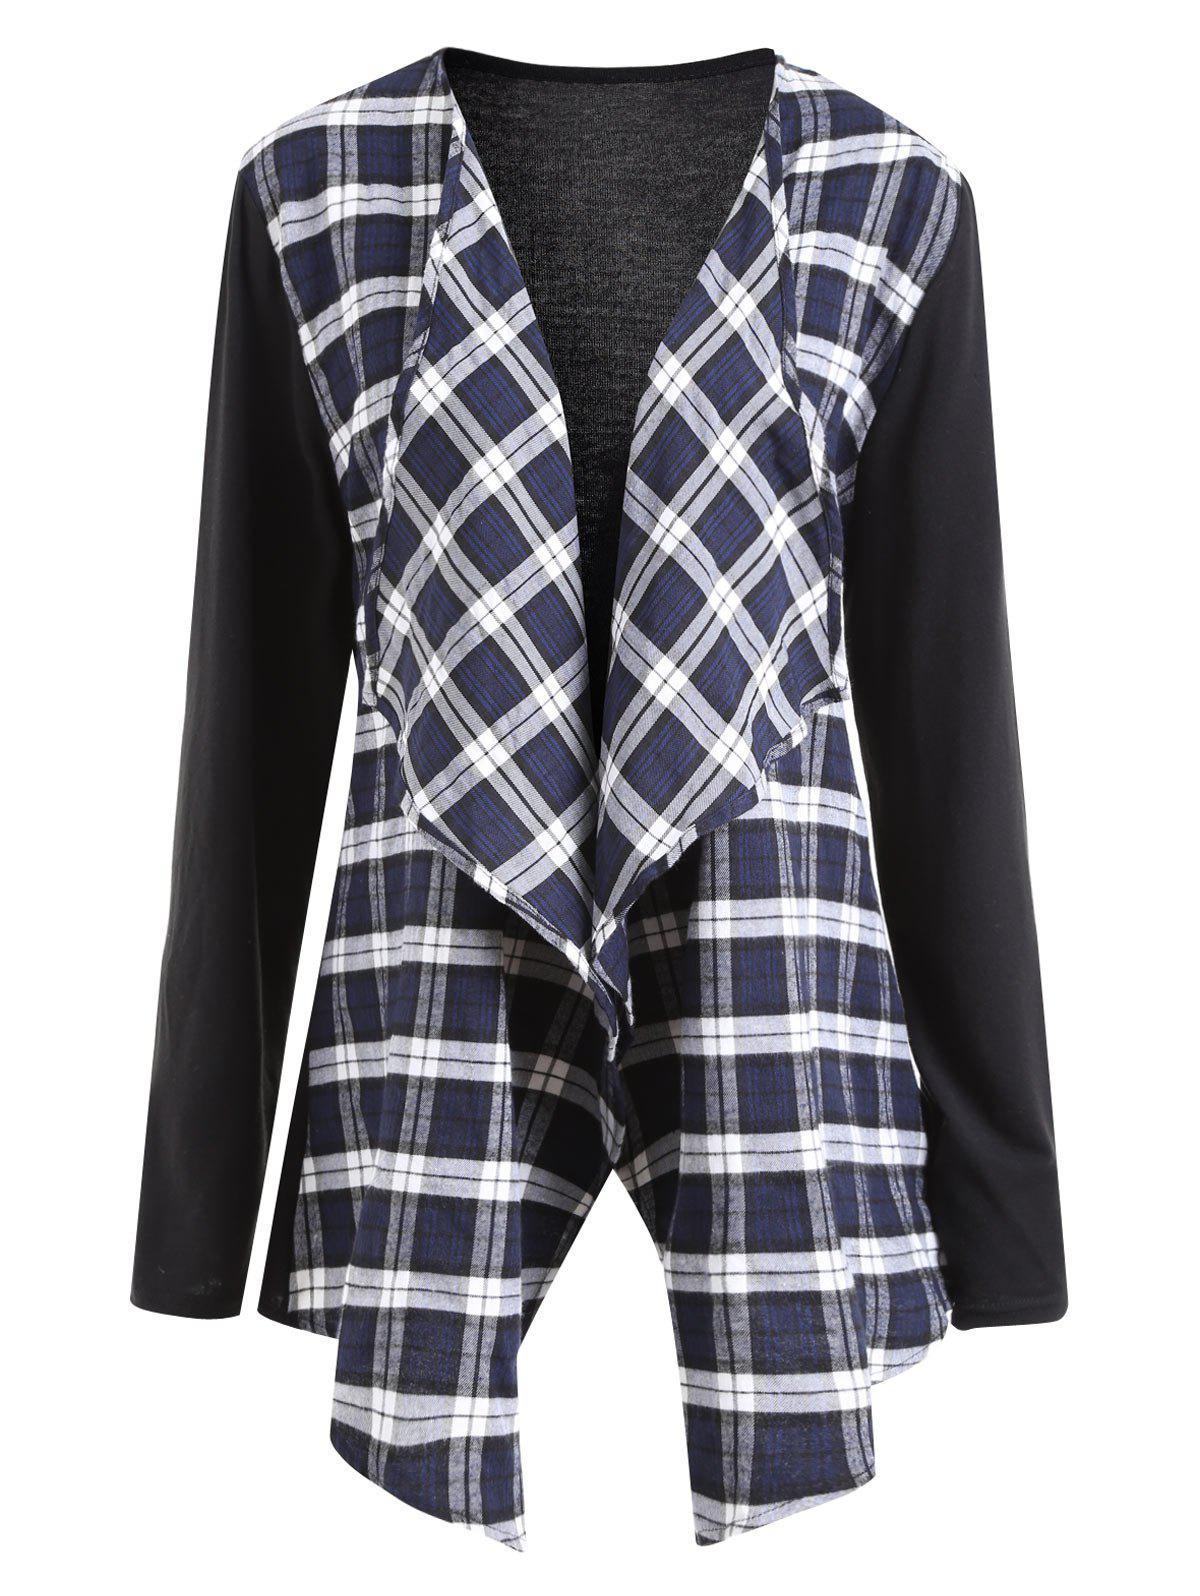 Collarless Plus Size Plaid Panel Waterfall JacketWOMEN<br><br>Size: 2XL; Color: BLACK; Clothes Type: Jackets; Material: Cotton Blends,Polyester; Type: Asymmetric Length; Shirt Length: Regular; Sleeve Length: Full; Collar: Collarless; Pattern Type: Plaid; Embellishment: Draped,Spliced; Style: Fashion; Season: Fall; Weight: 0.3200kg; Package Contents: 1 x Jacket;